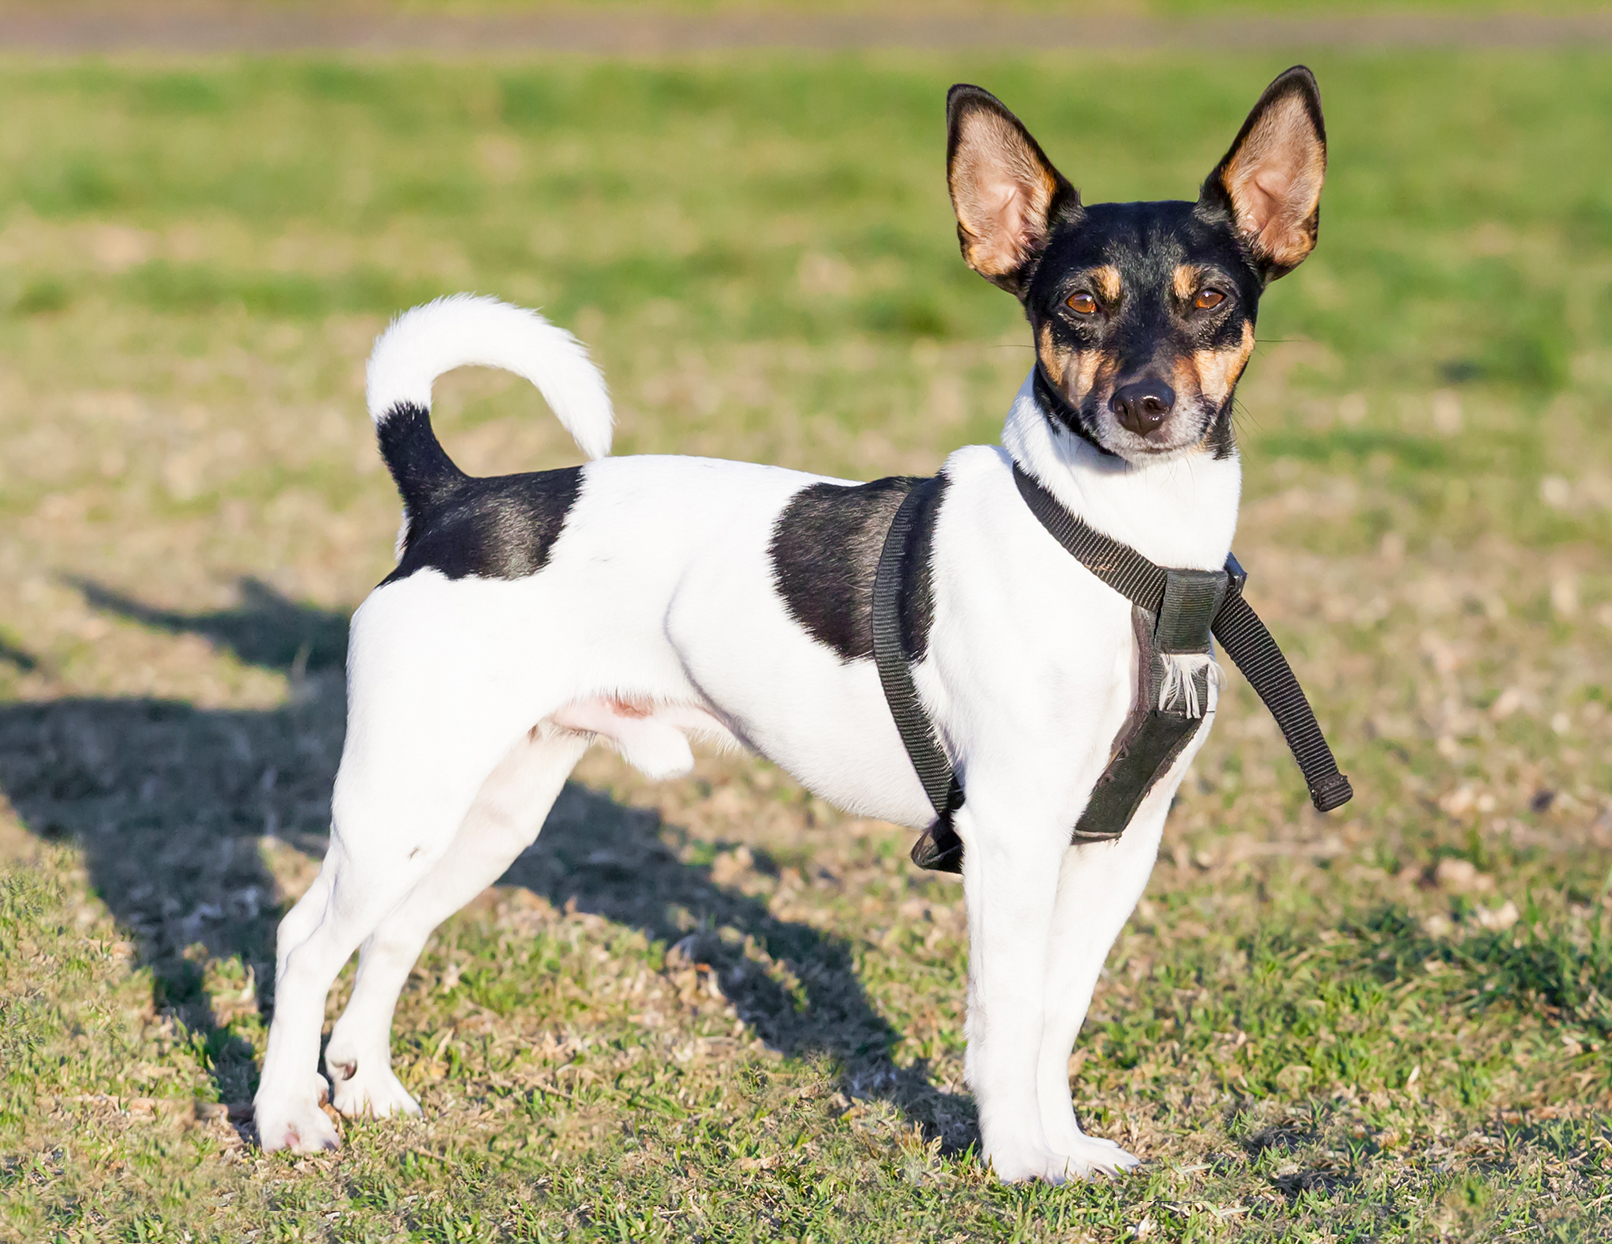 rat terrier wearing a black harness standing on grass on a sunny day